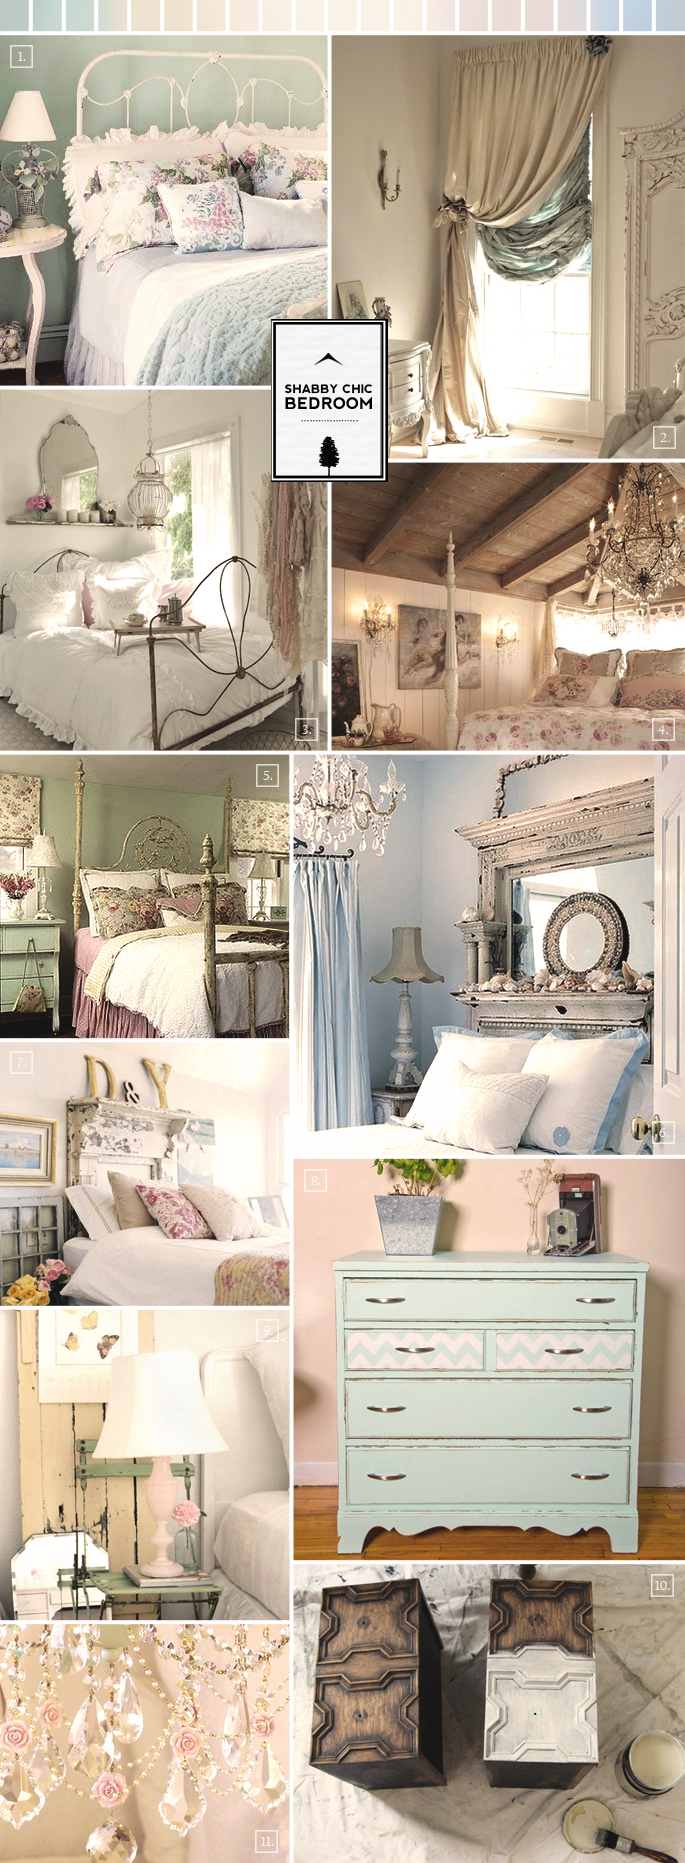 Shabby Chic Bedroom Ideas And Decor Inspiration Home Tree Atlas